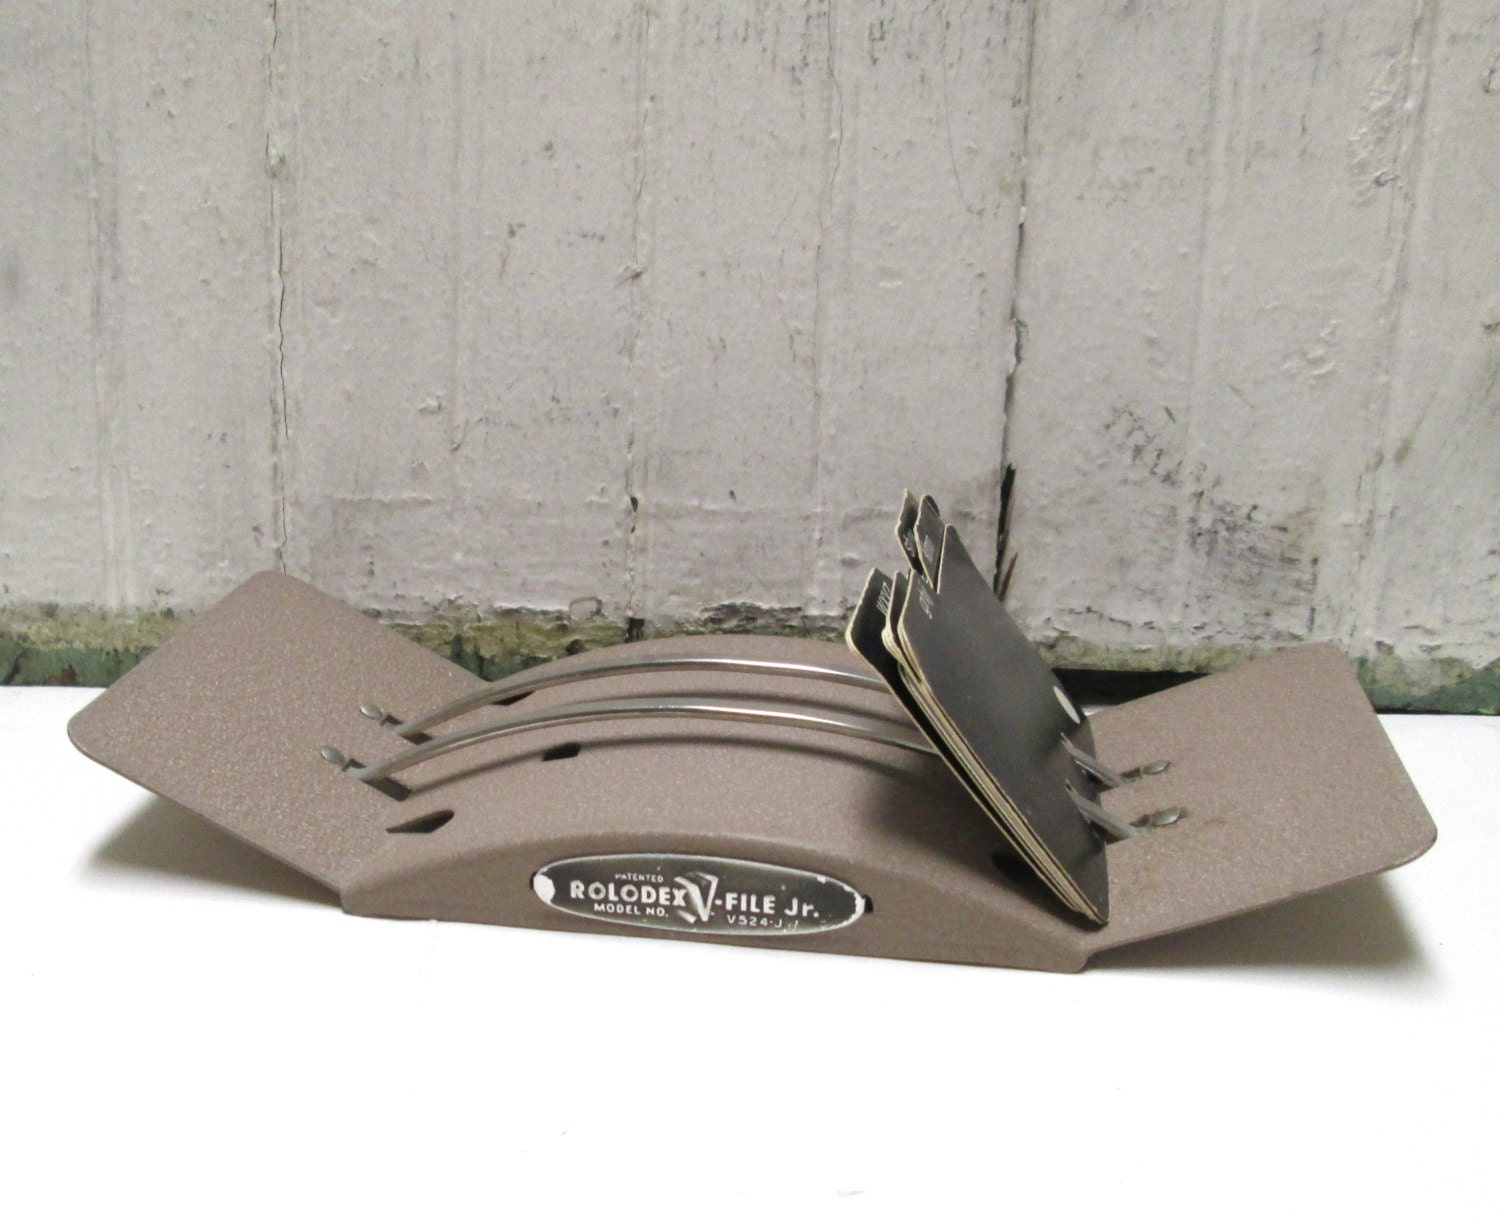 Rolodex Metal Card File Industrial Vintage Contact Organizer